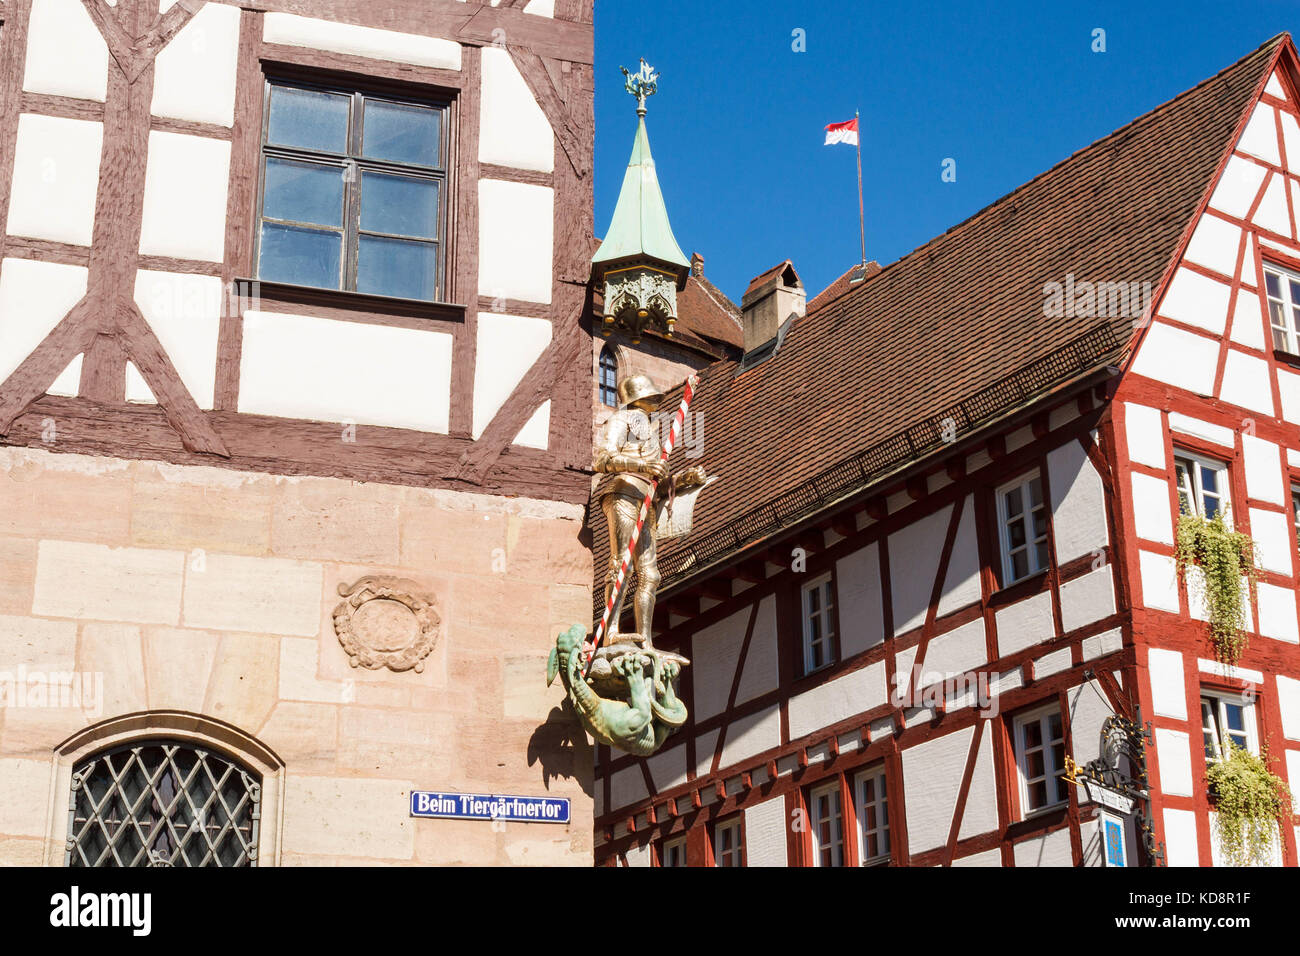 Pilatushaus (Pilatus house) in the old town of  Nuremberg. A statue of St. George in golden armour  defeating the - Stock Image